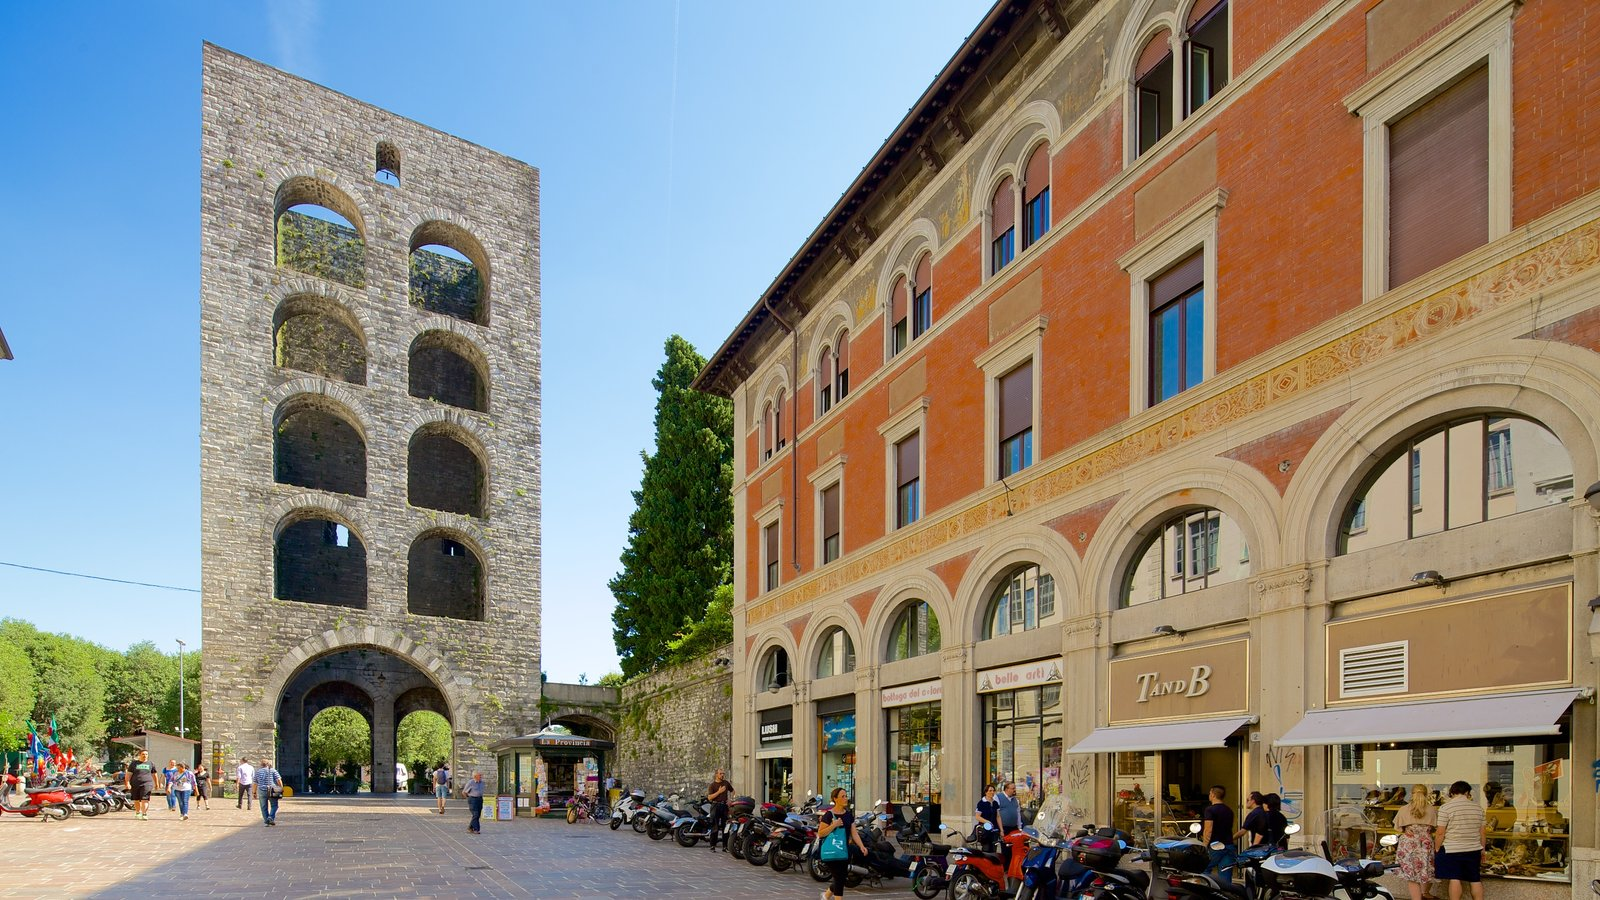 Piazza Vittoria which includes heritage architecture and a square or plaza